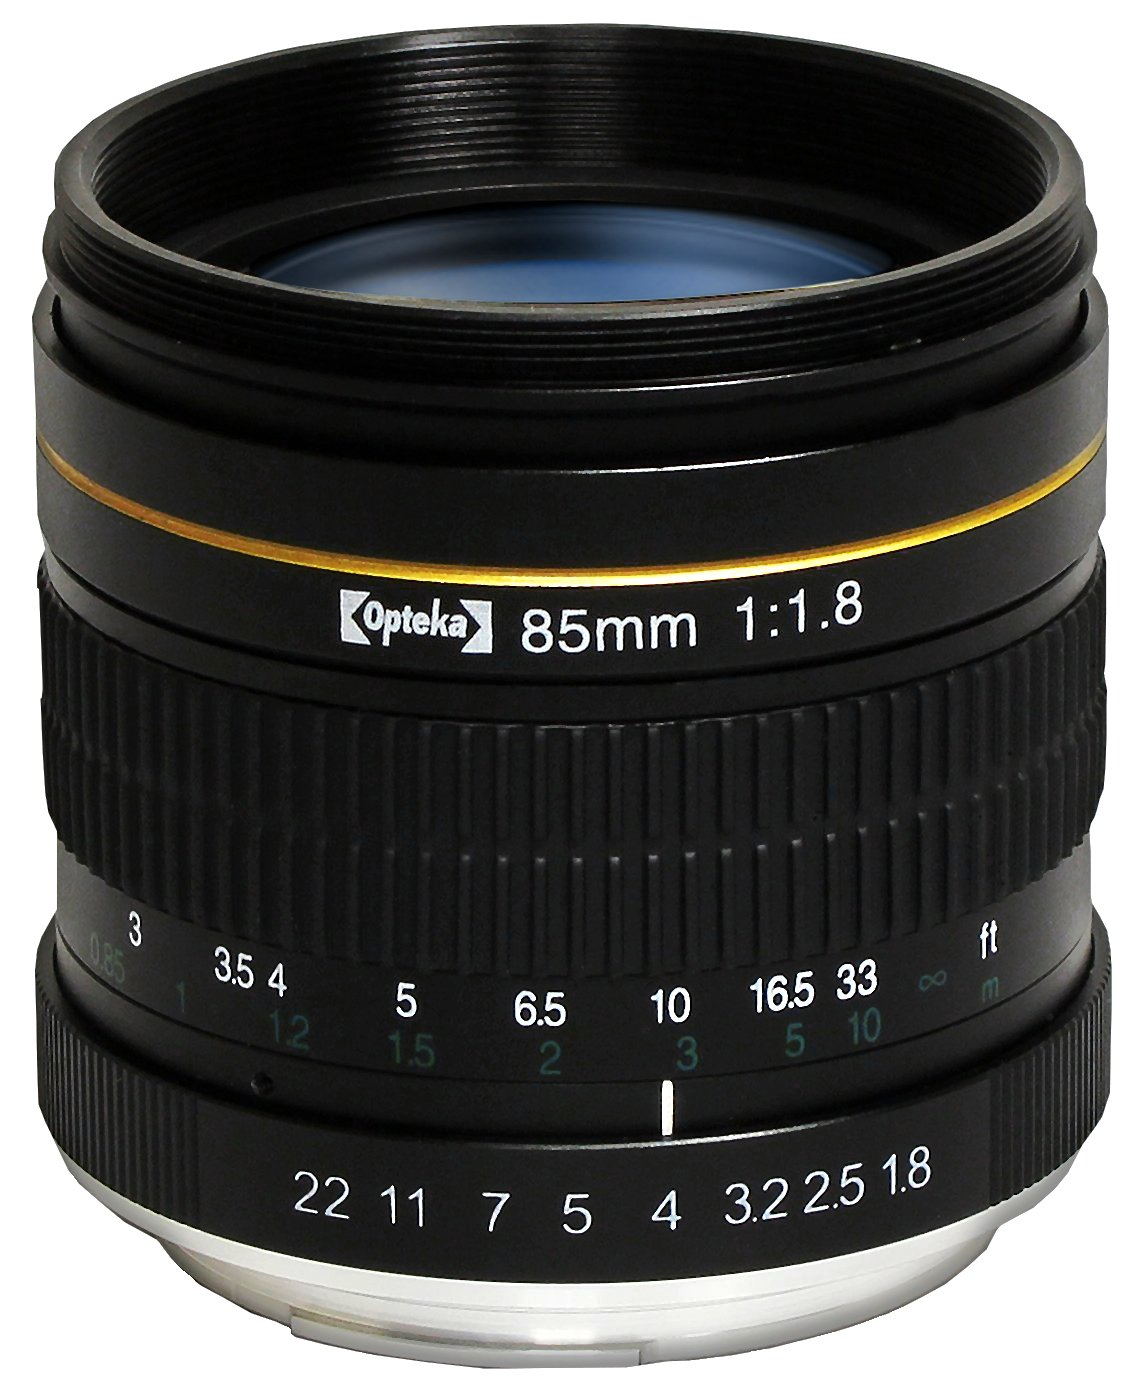 Opteka 85mm f/1.8 Manual Focus Aspherical Medium Telephoto Lens